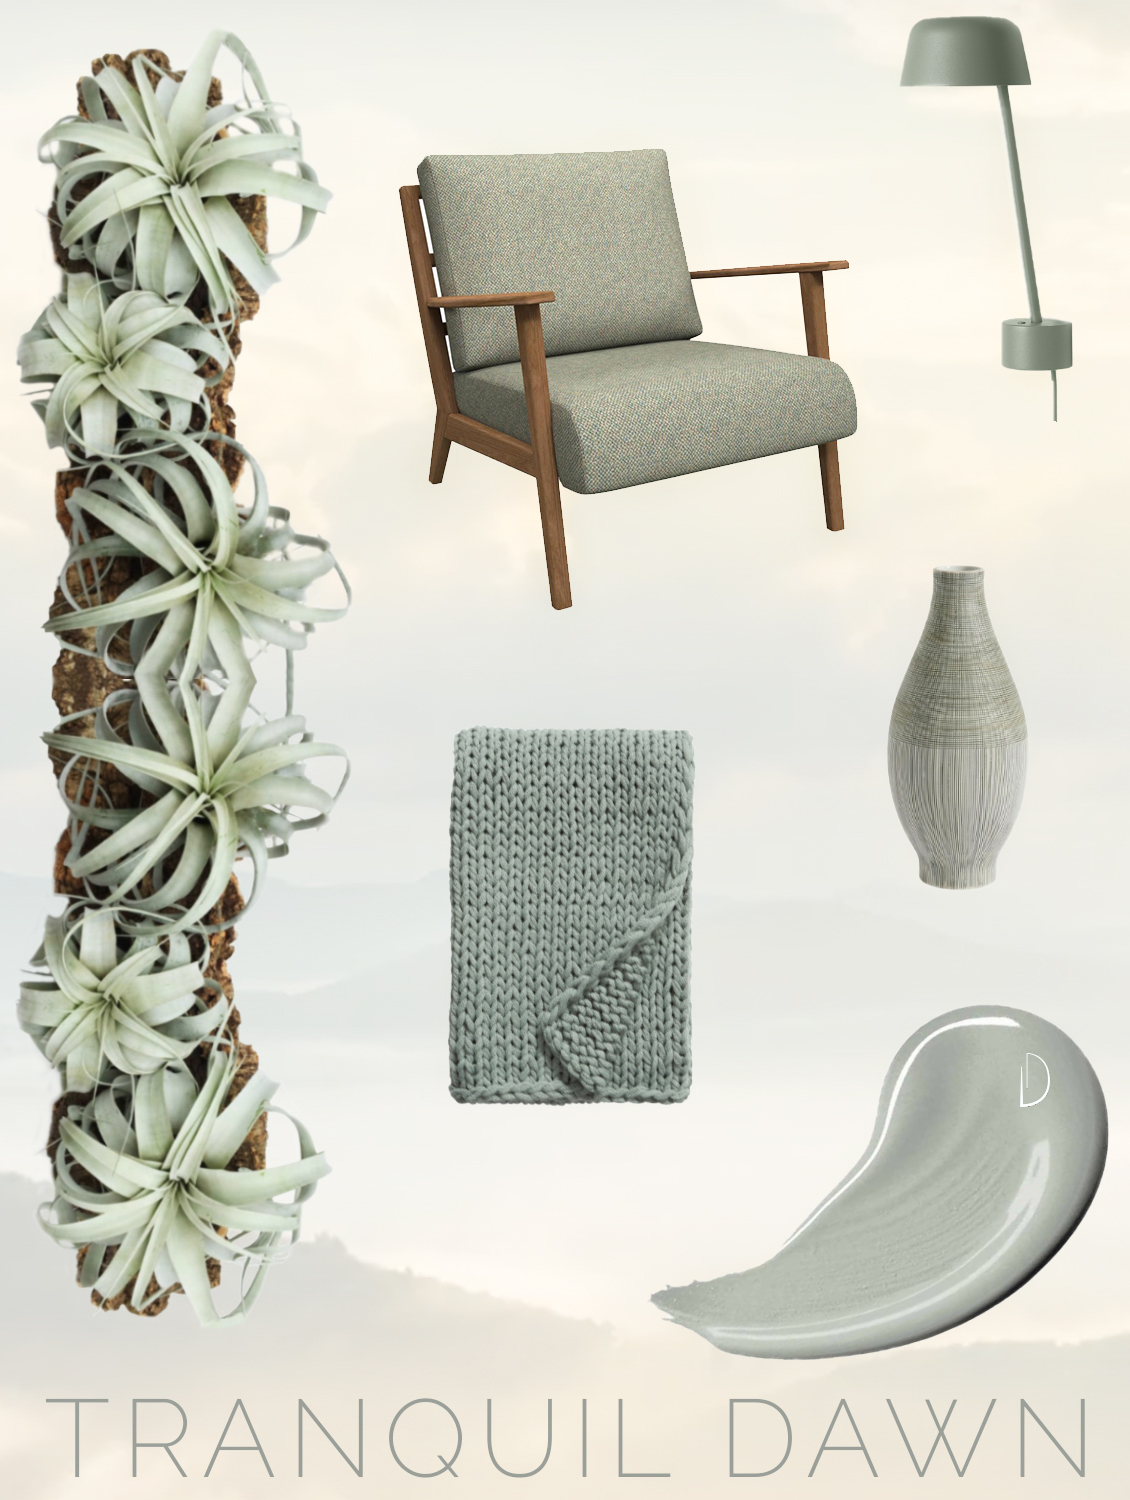 Tranquil Dawn interior design products.